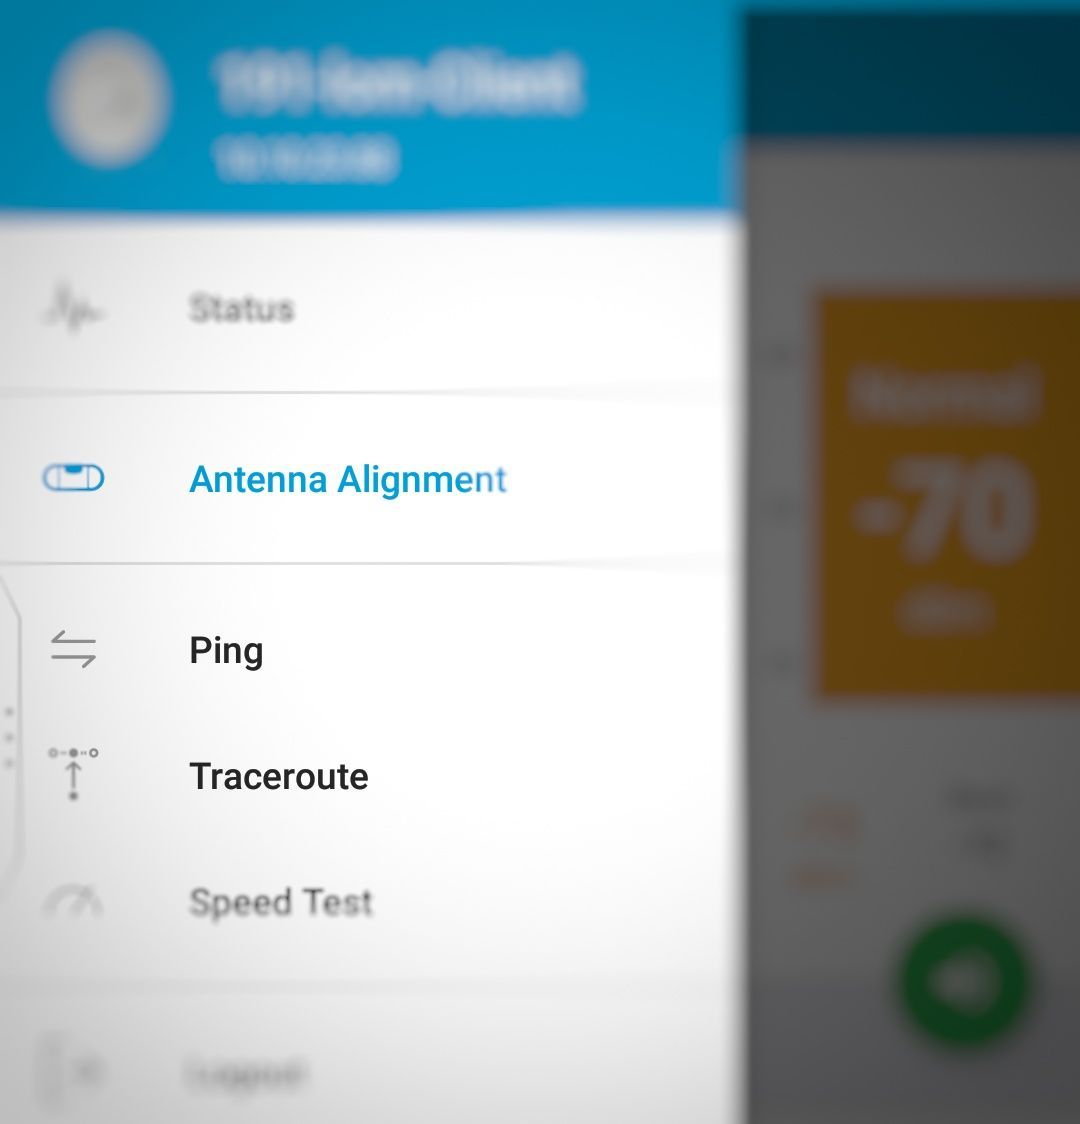 Antenna Alignment and Ping Tools for read-only account on